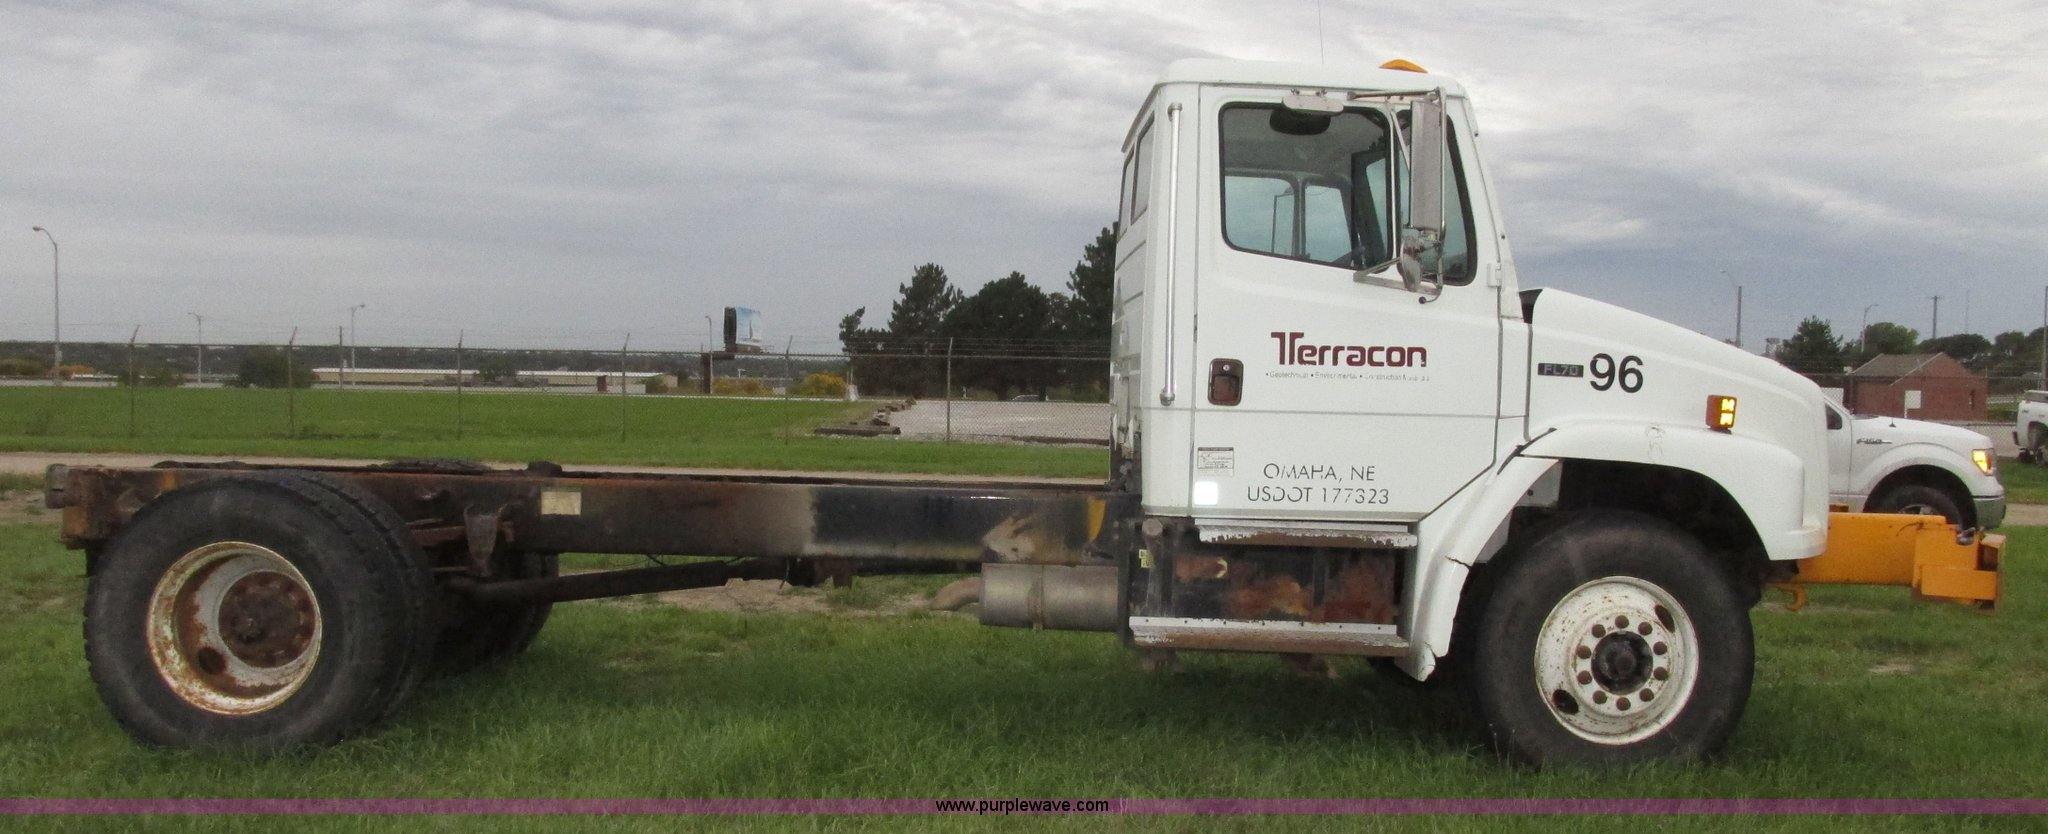 2001 Freightliner FL70 Business Class truck cab and chassis